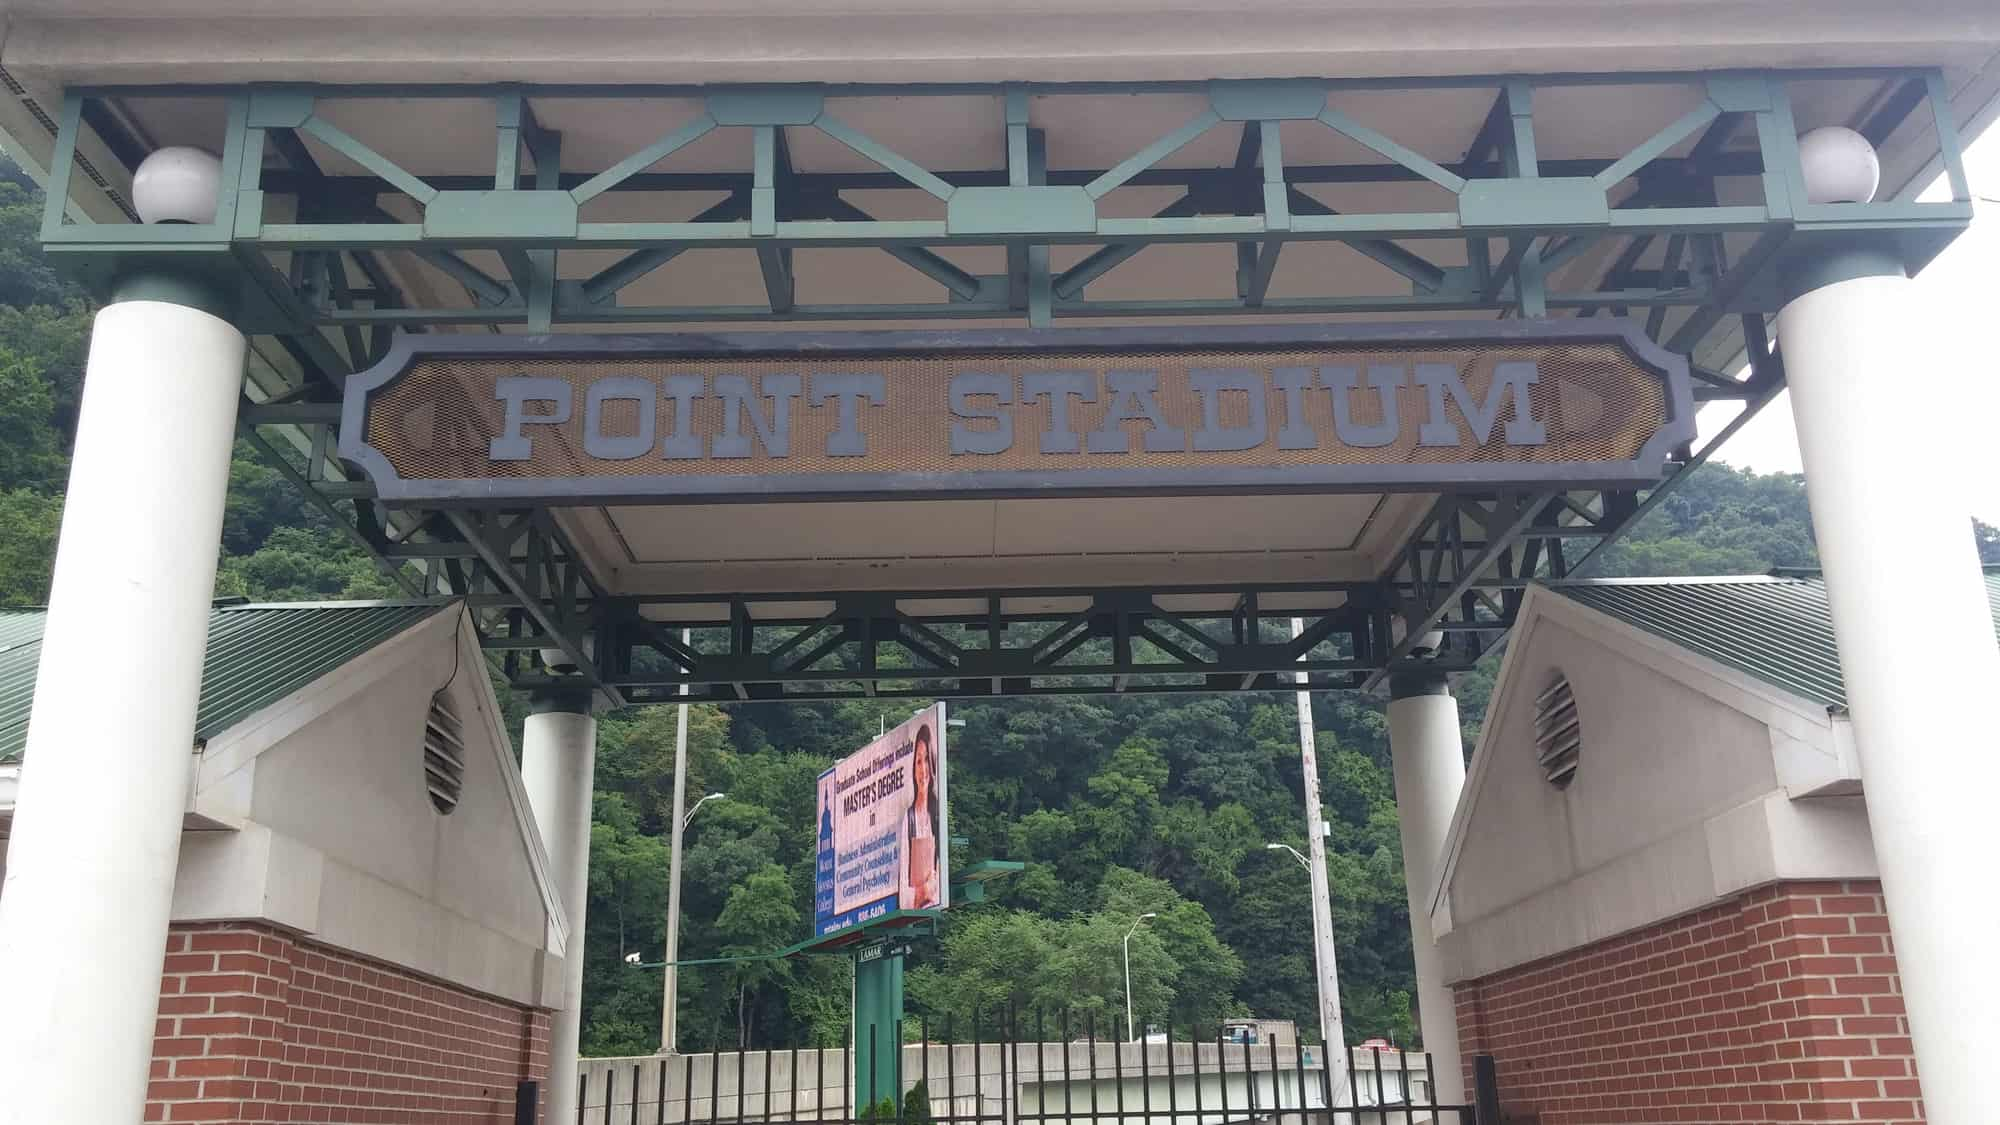 Point Stadium entrance